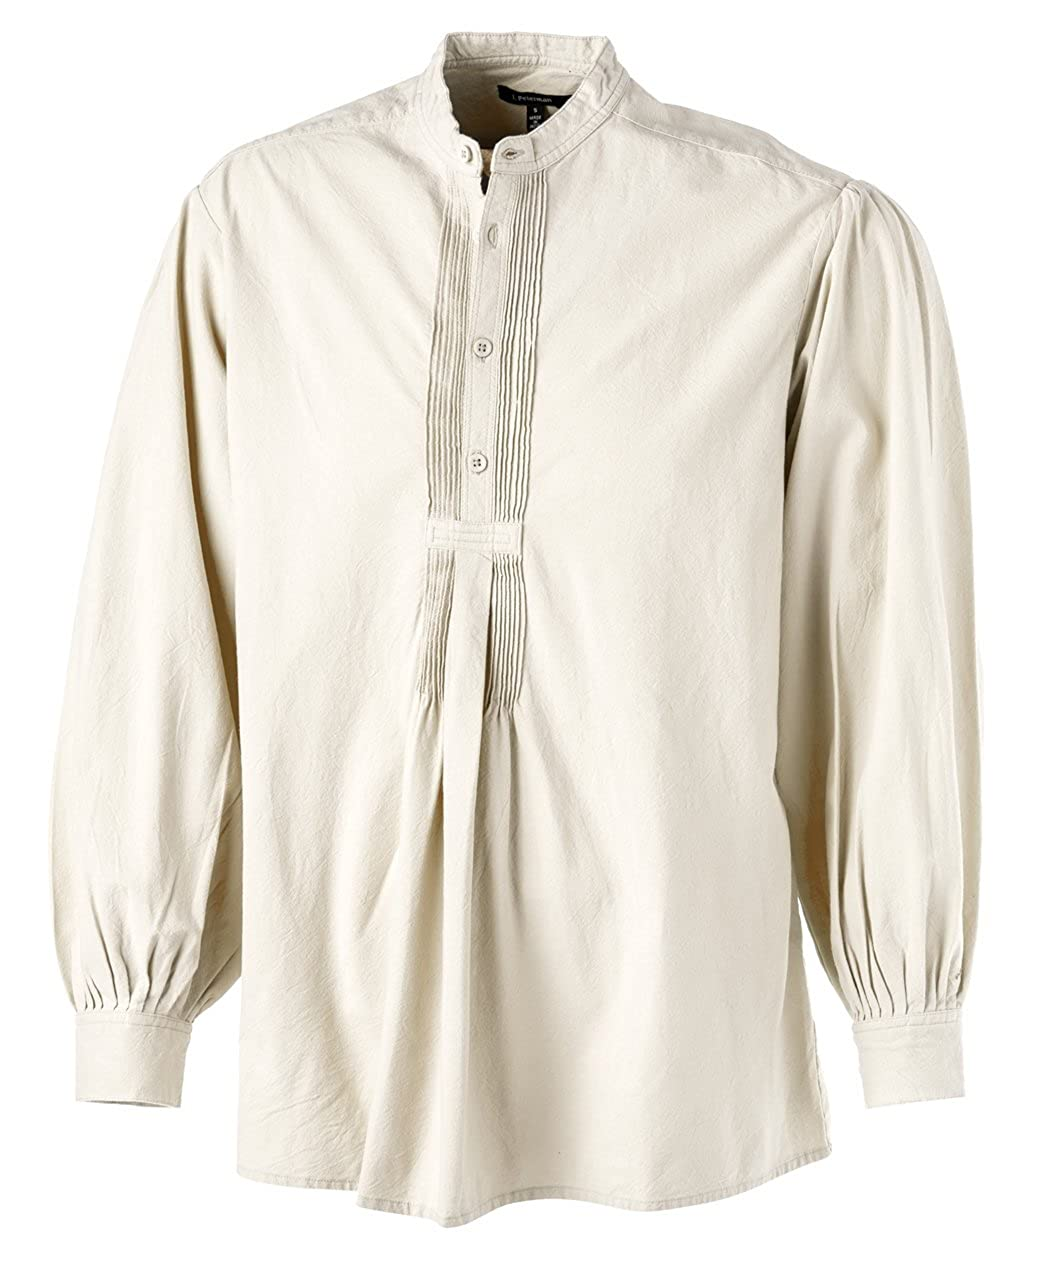 Victorian Men's Shirts- Wingtip, Gambler, Bib, Collarless Otavalo Mountain Shirt $33.35 AT vintagedancer.com